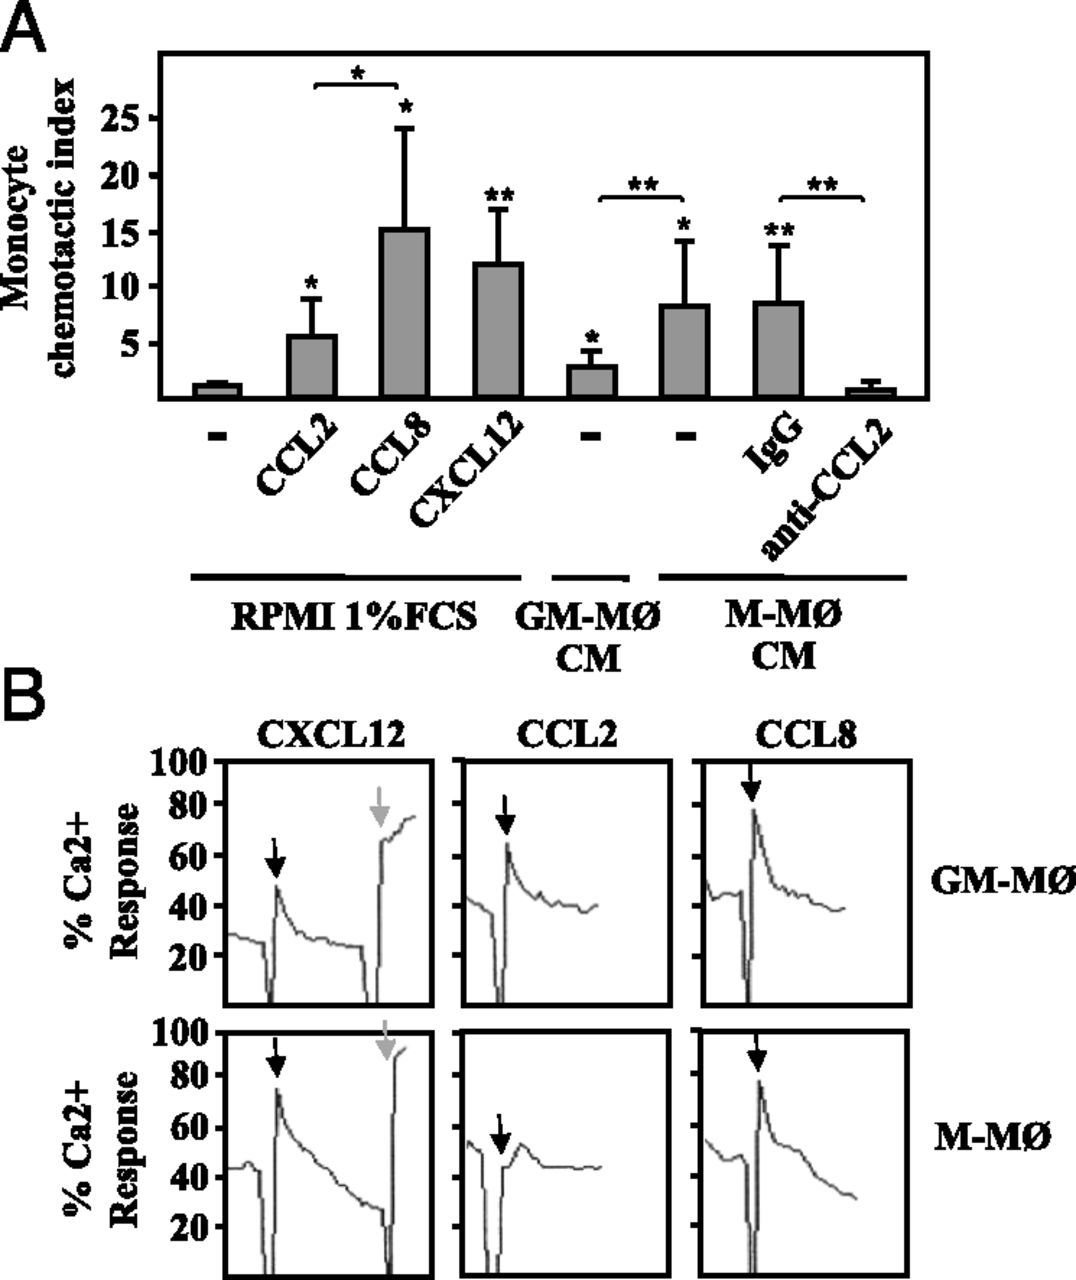 CCL2 Shapes Macrophage Polarization by GM-CSF and M-CSF